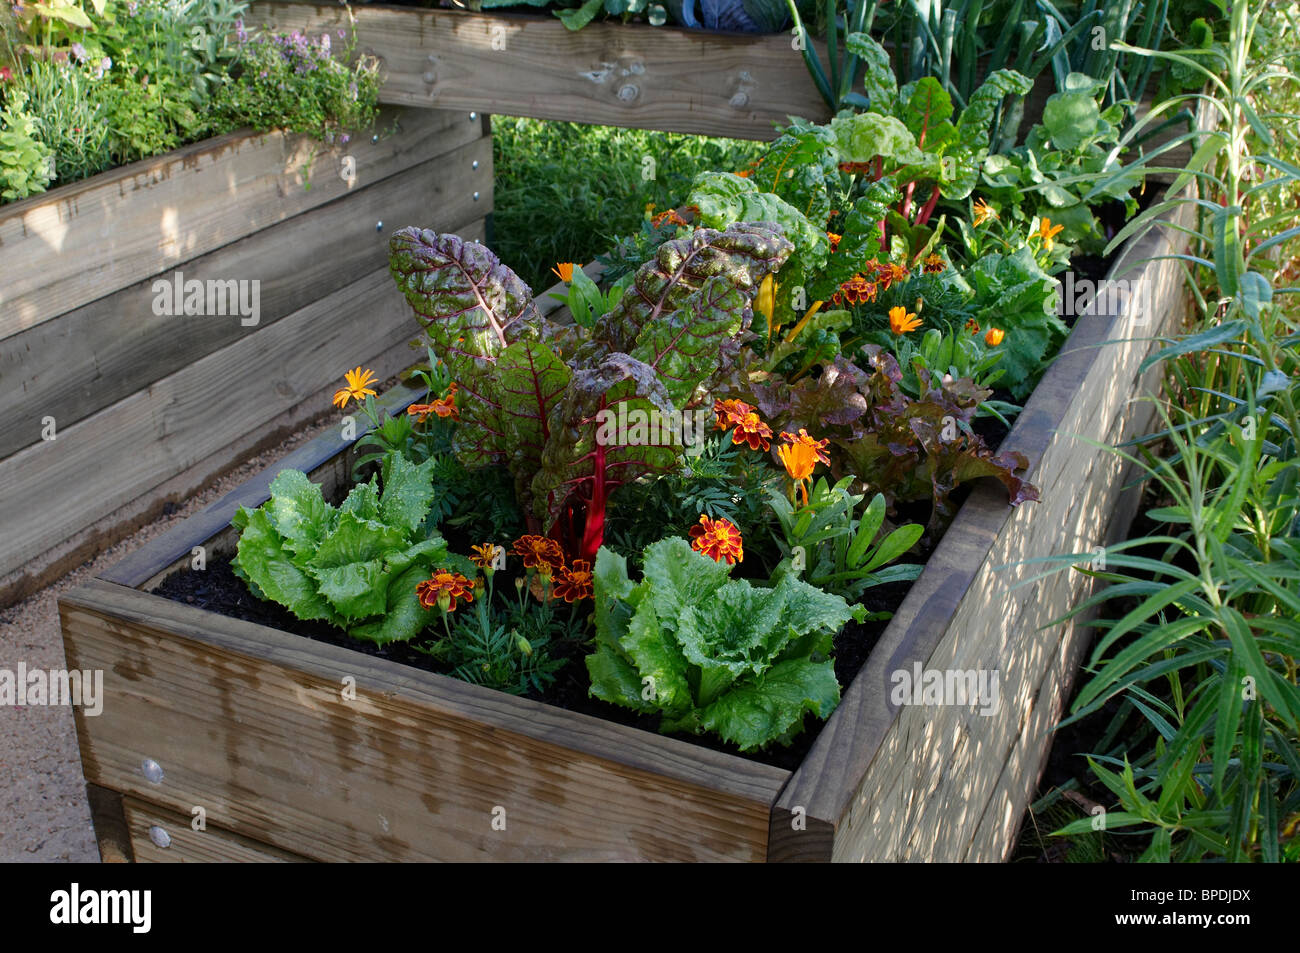 Small Urban Vegetable Garden In Enclosed Raised Beds